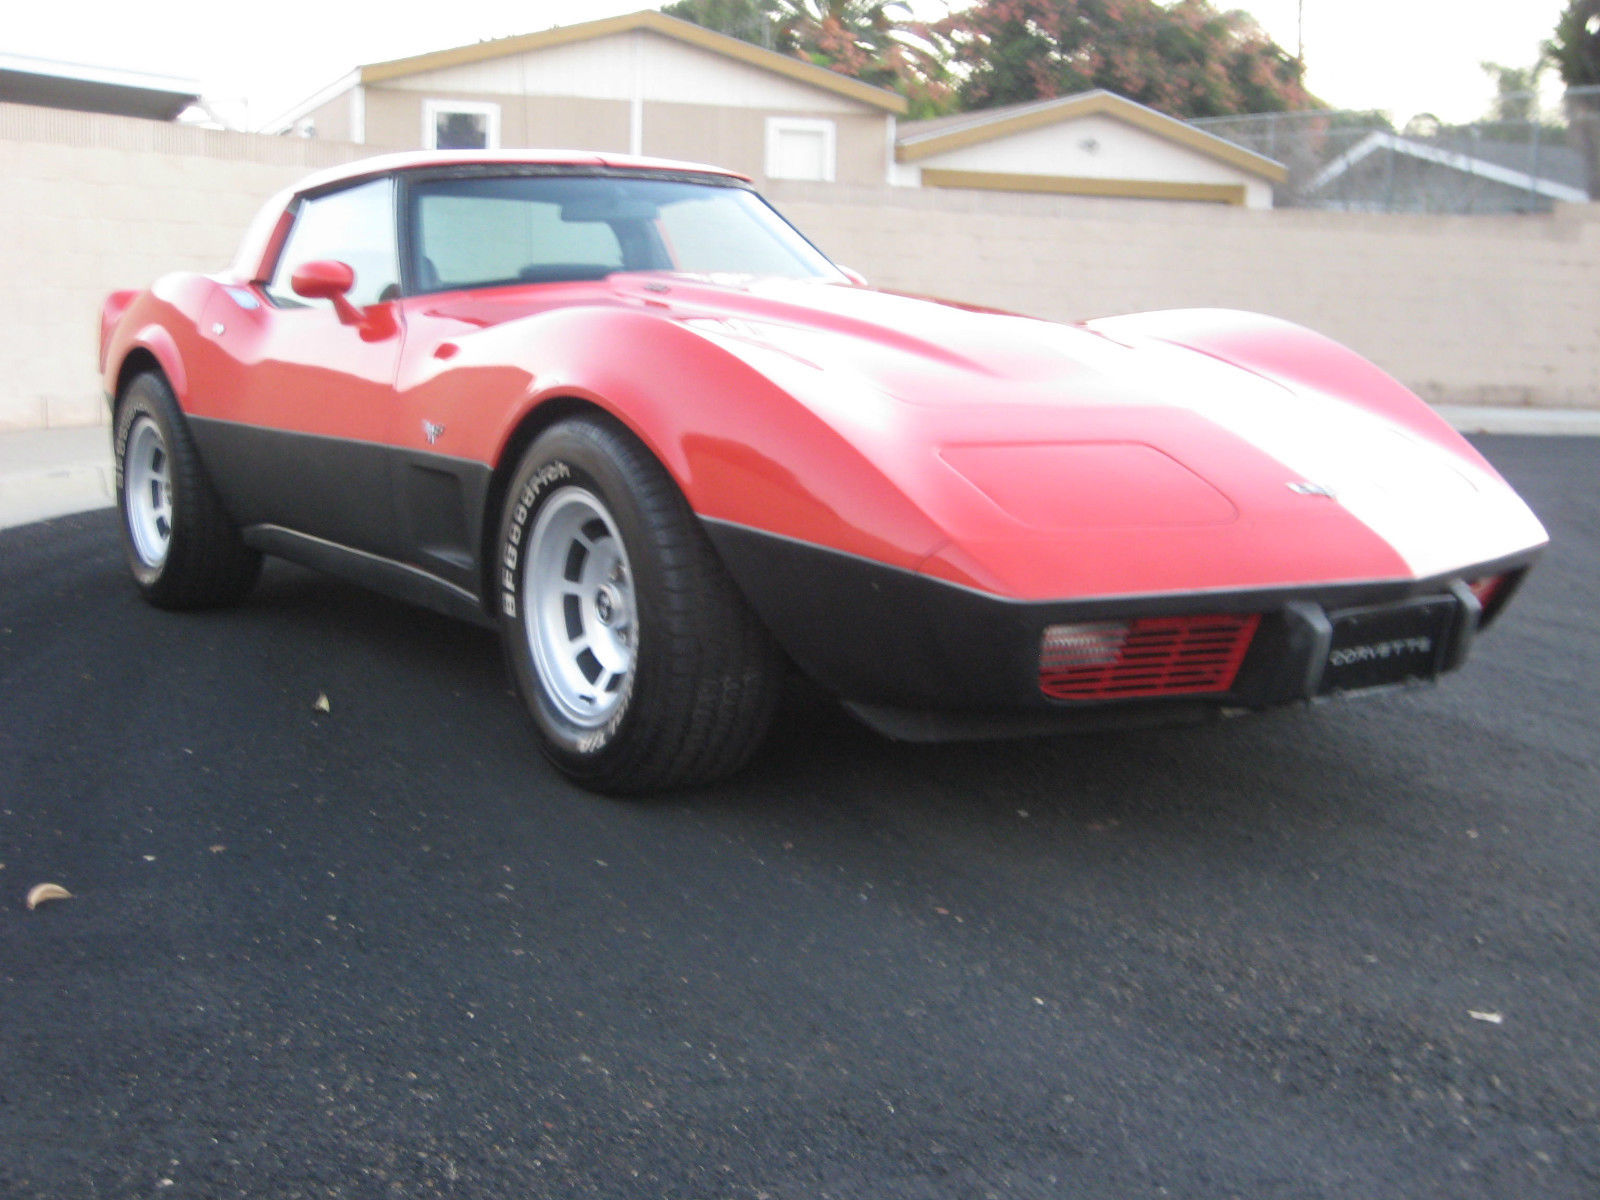 hight resolution of  79 vette l 82 4 spd black leather interior runs strong and dependable look